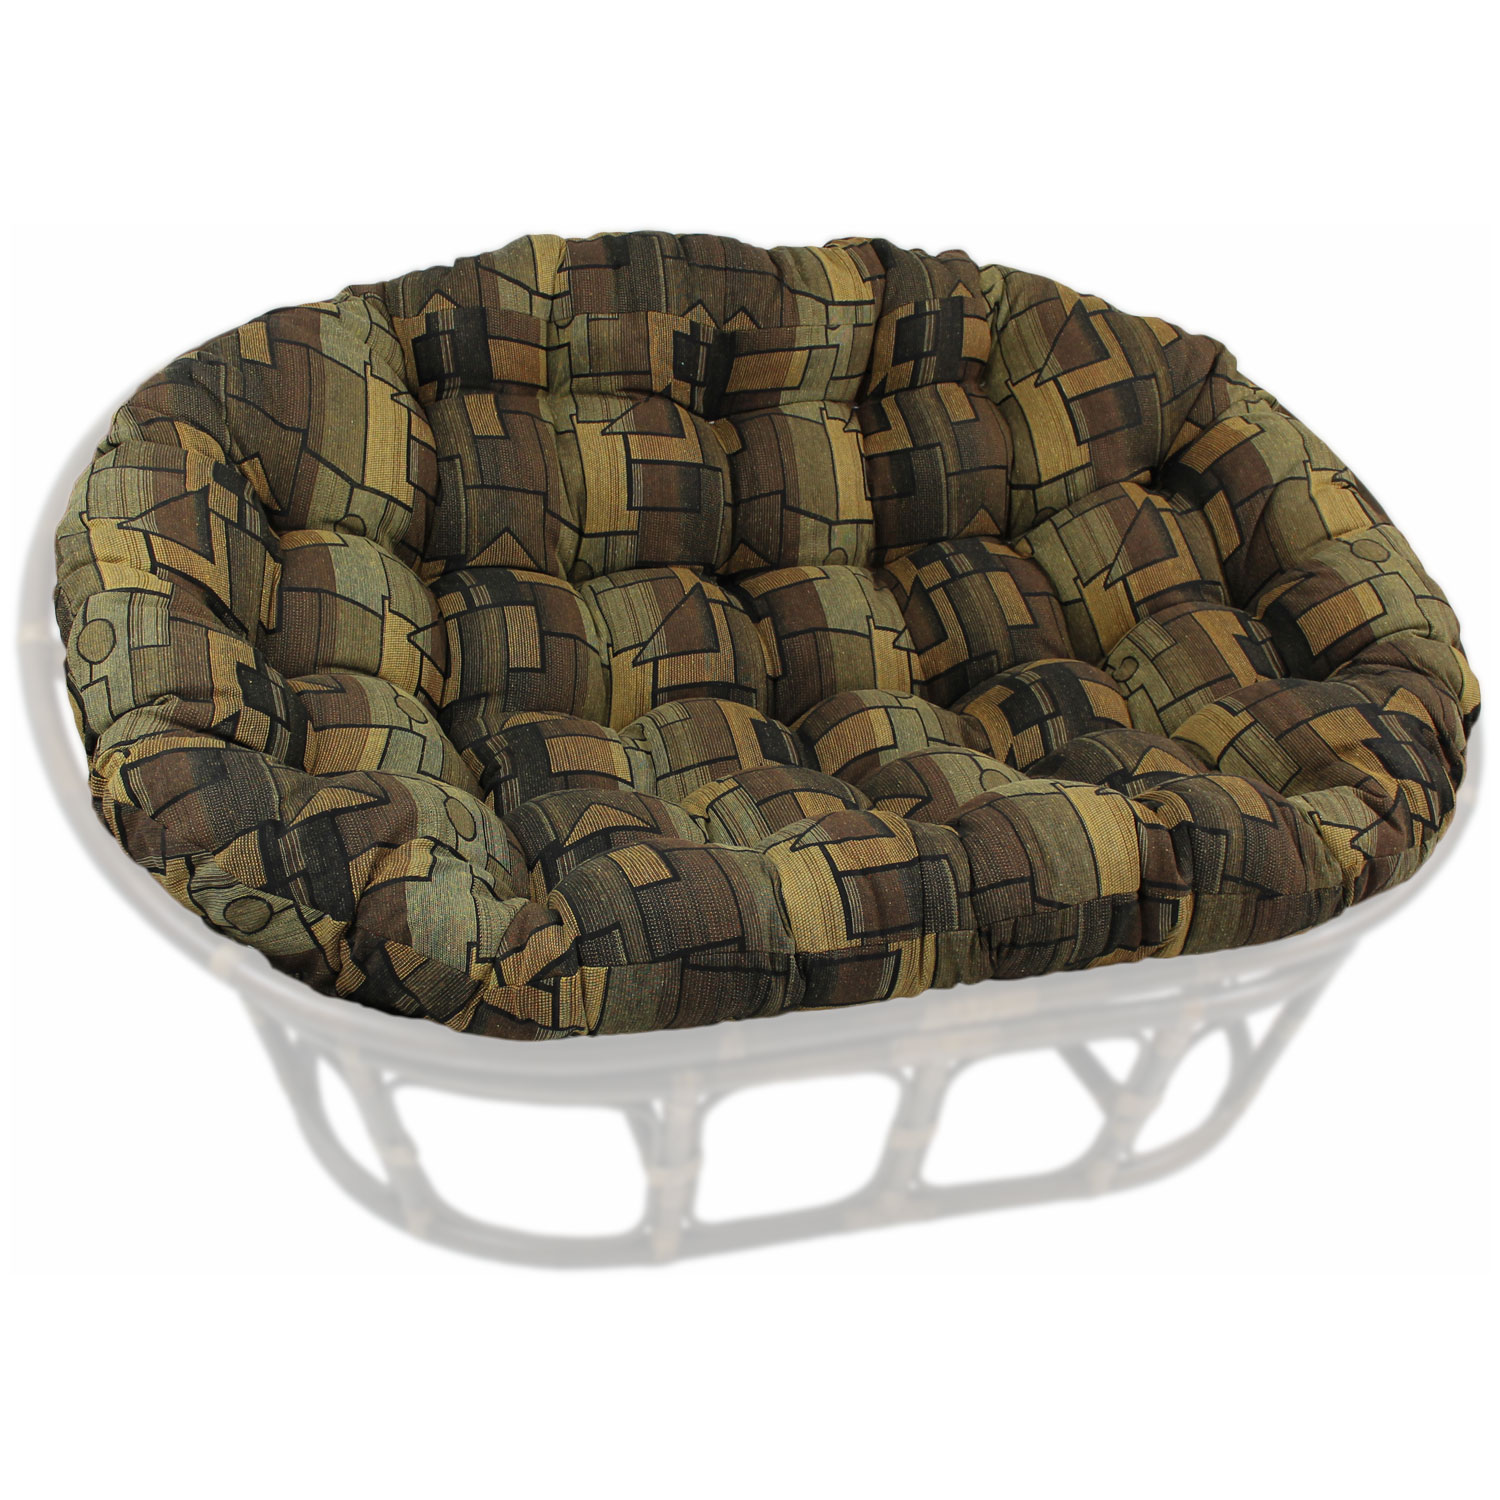 Papasan Cushion | Papasan Chair Frame | Black Papasan Chair